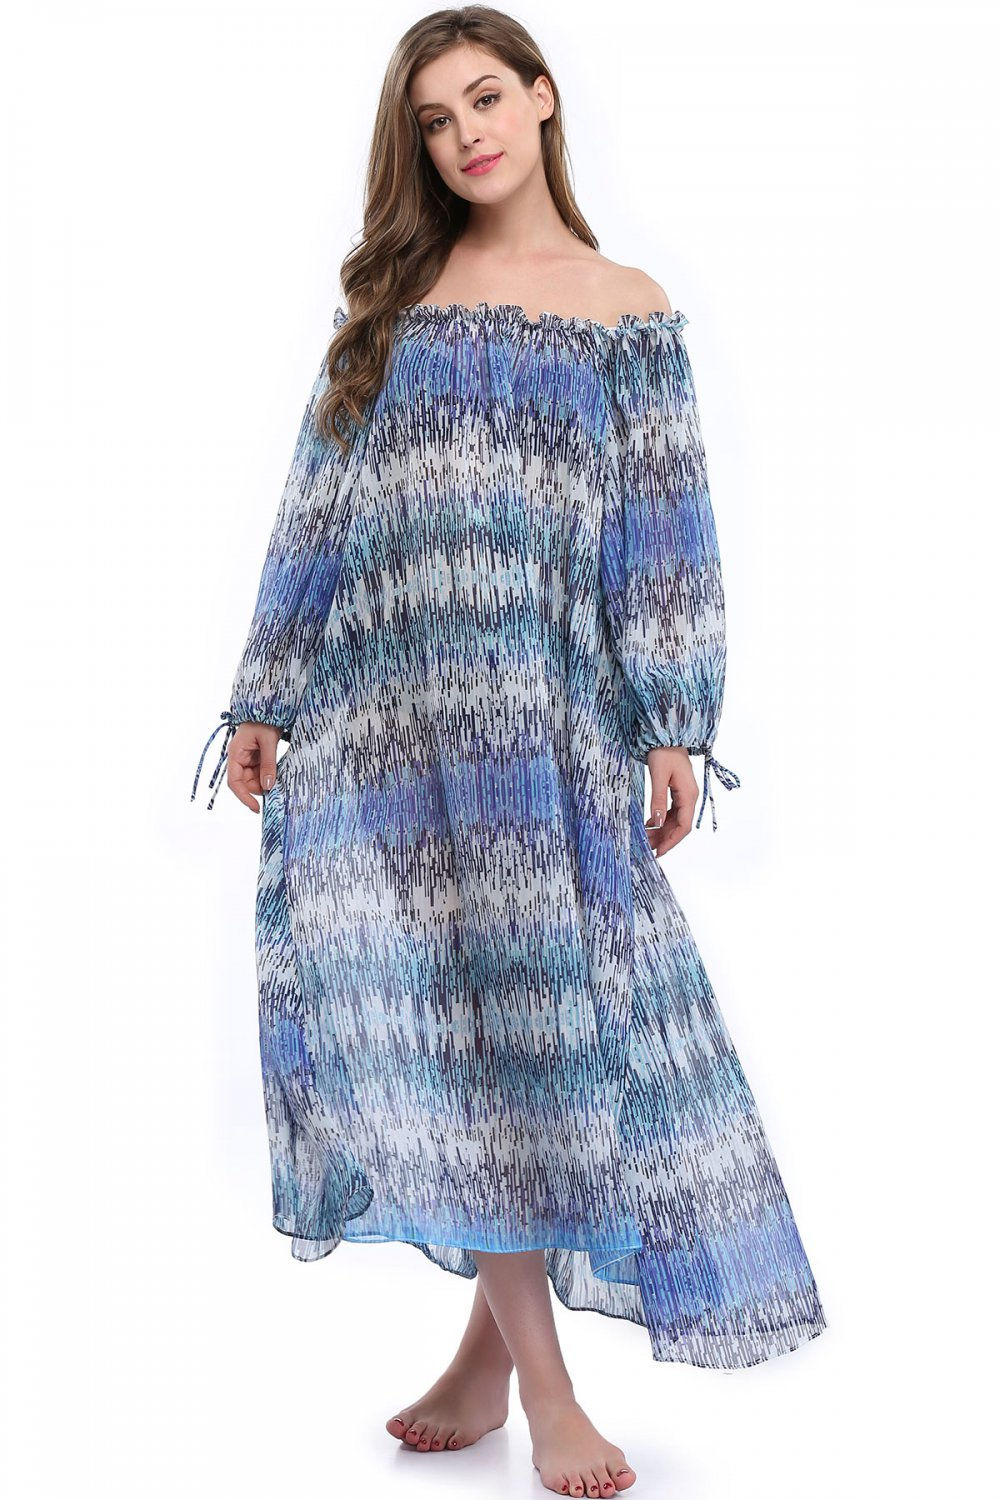 S-XL Size Blue Long Sleeves Off The Shoulder Ruffle Trim Maxi Dress W351021